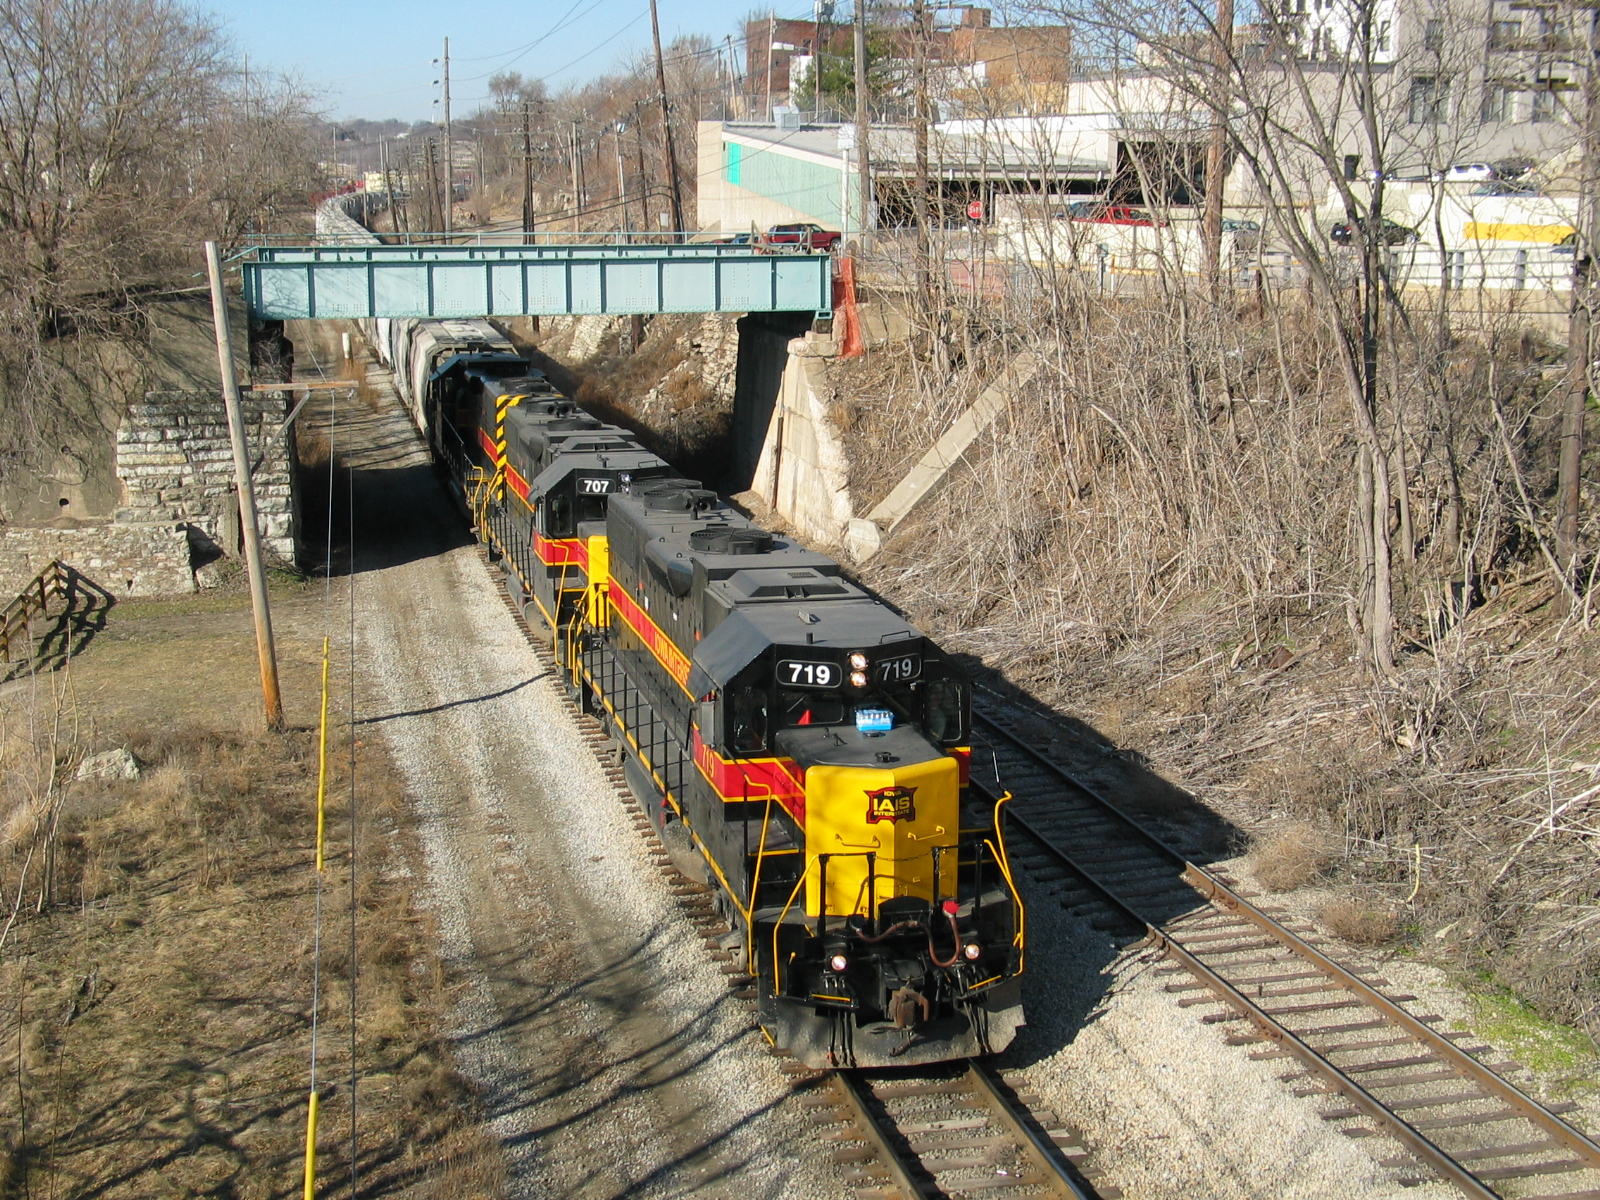 East train at Lasalle, next to the connection track going up the bluff to Lone Star's yard.  Feb. 14, 2006.